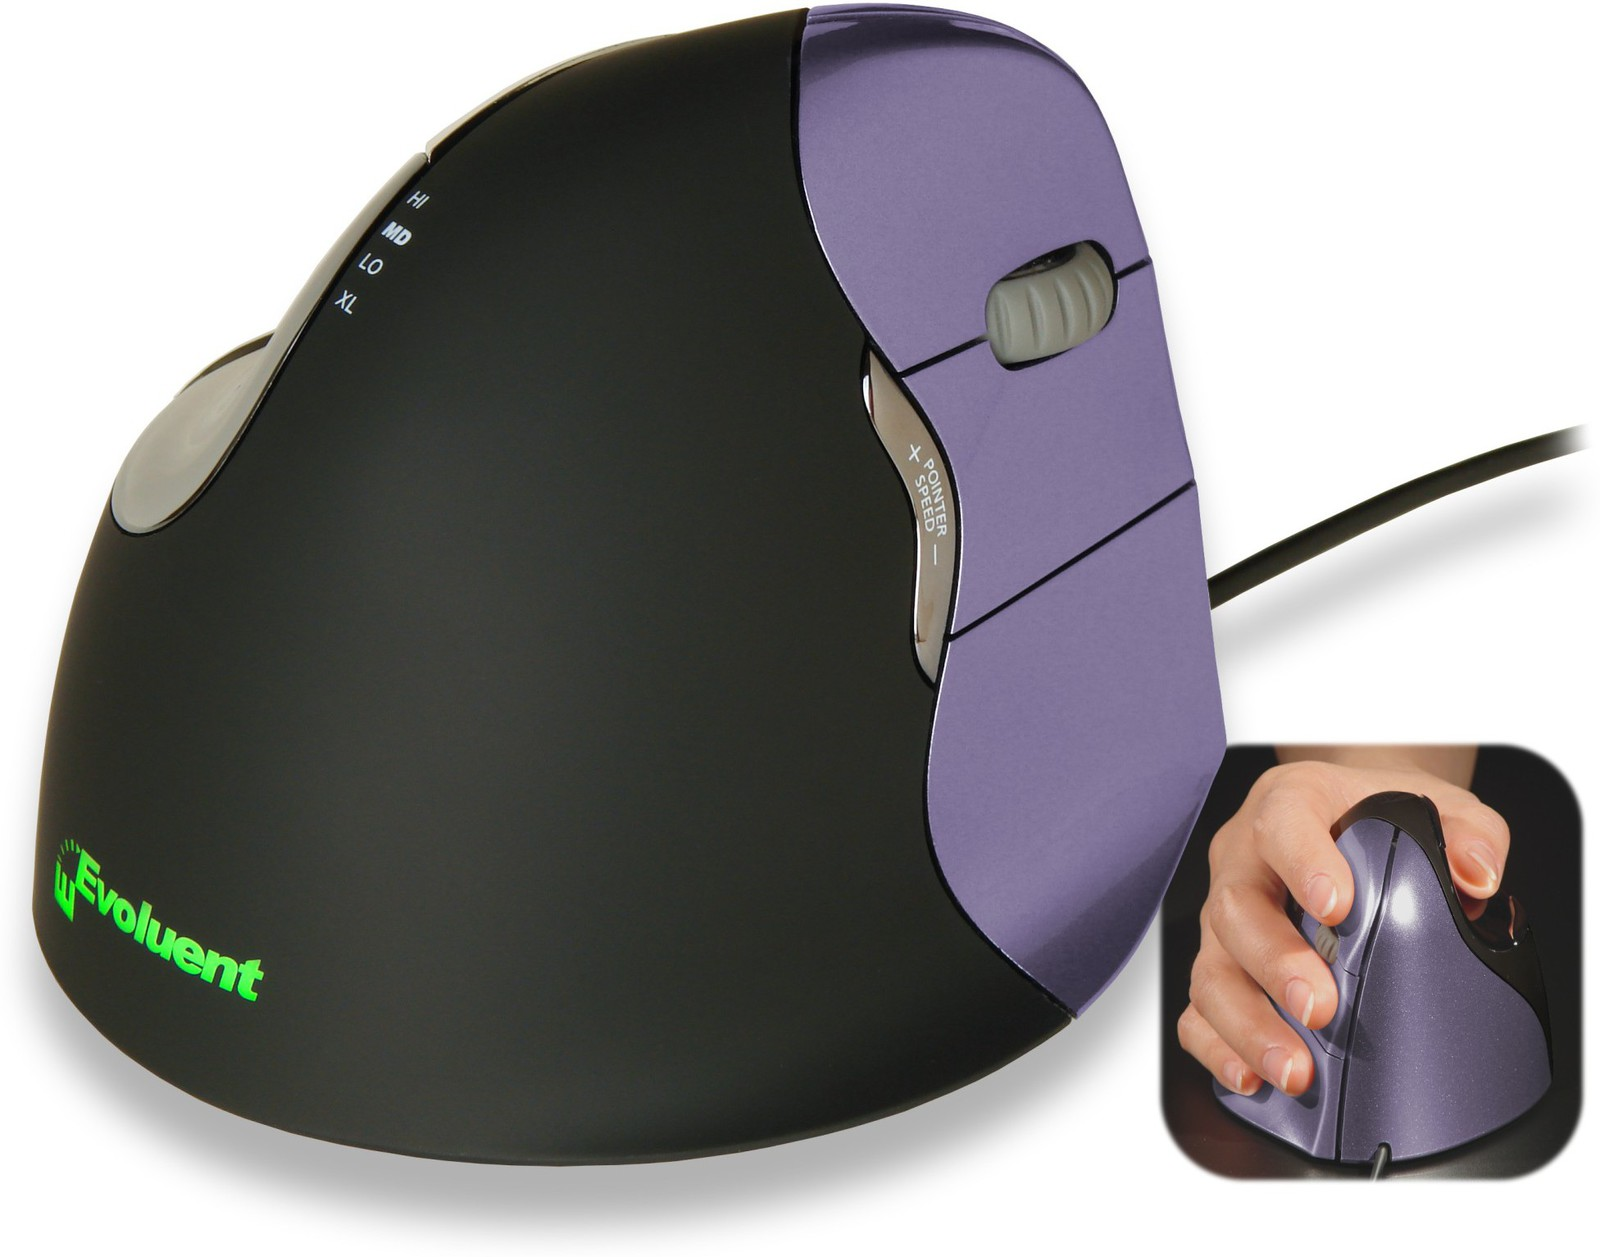 Evoluent Vertical Mouse4 Small Right